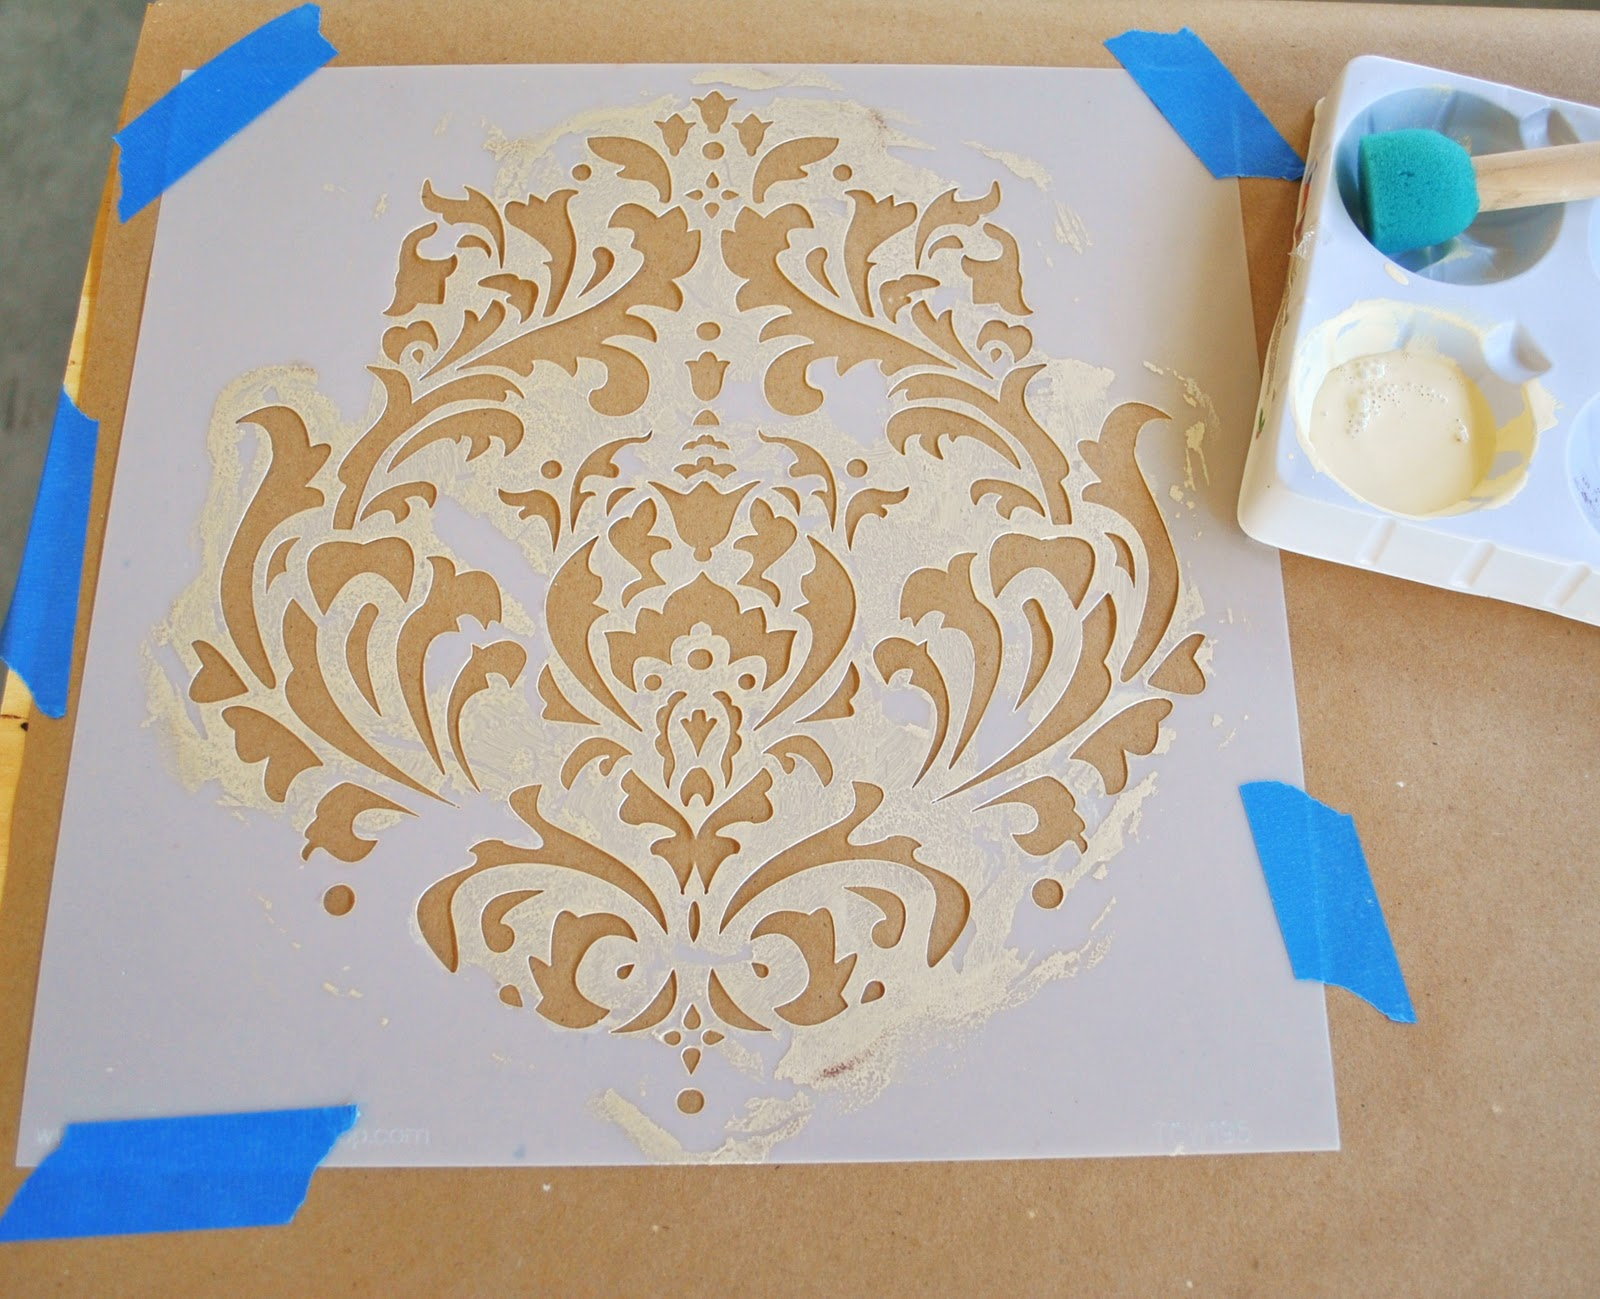 Stencils designs for wall painting images home wall decoration ideas stencils designs for wall painting image collections home wall stencils designs for wall painting image collections amipublicfo Image collections